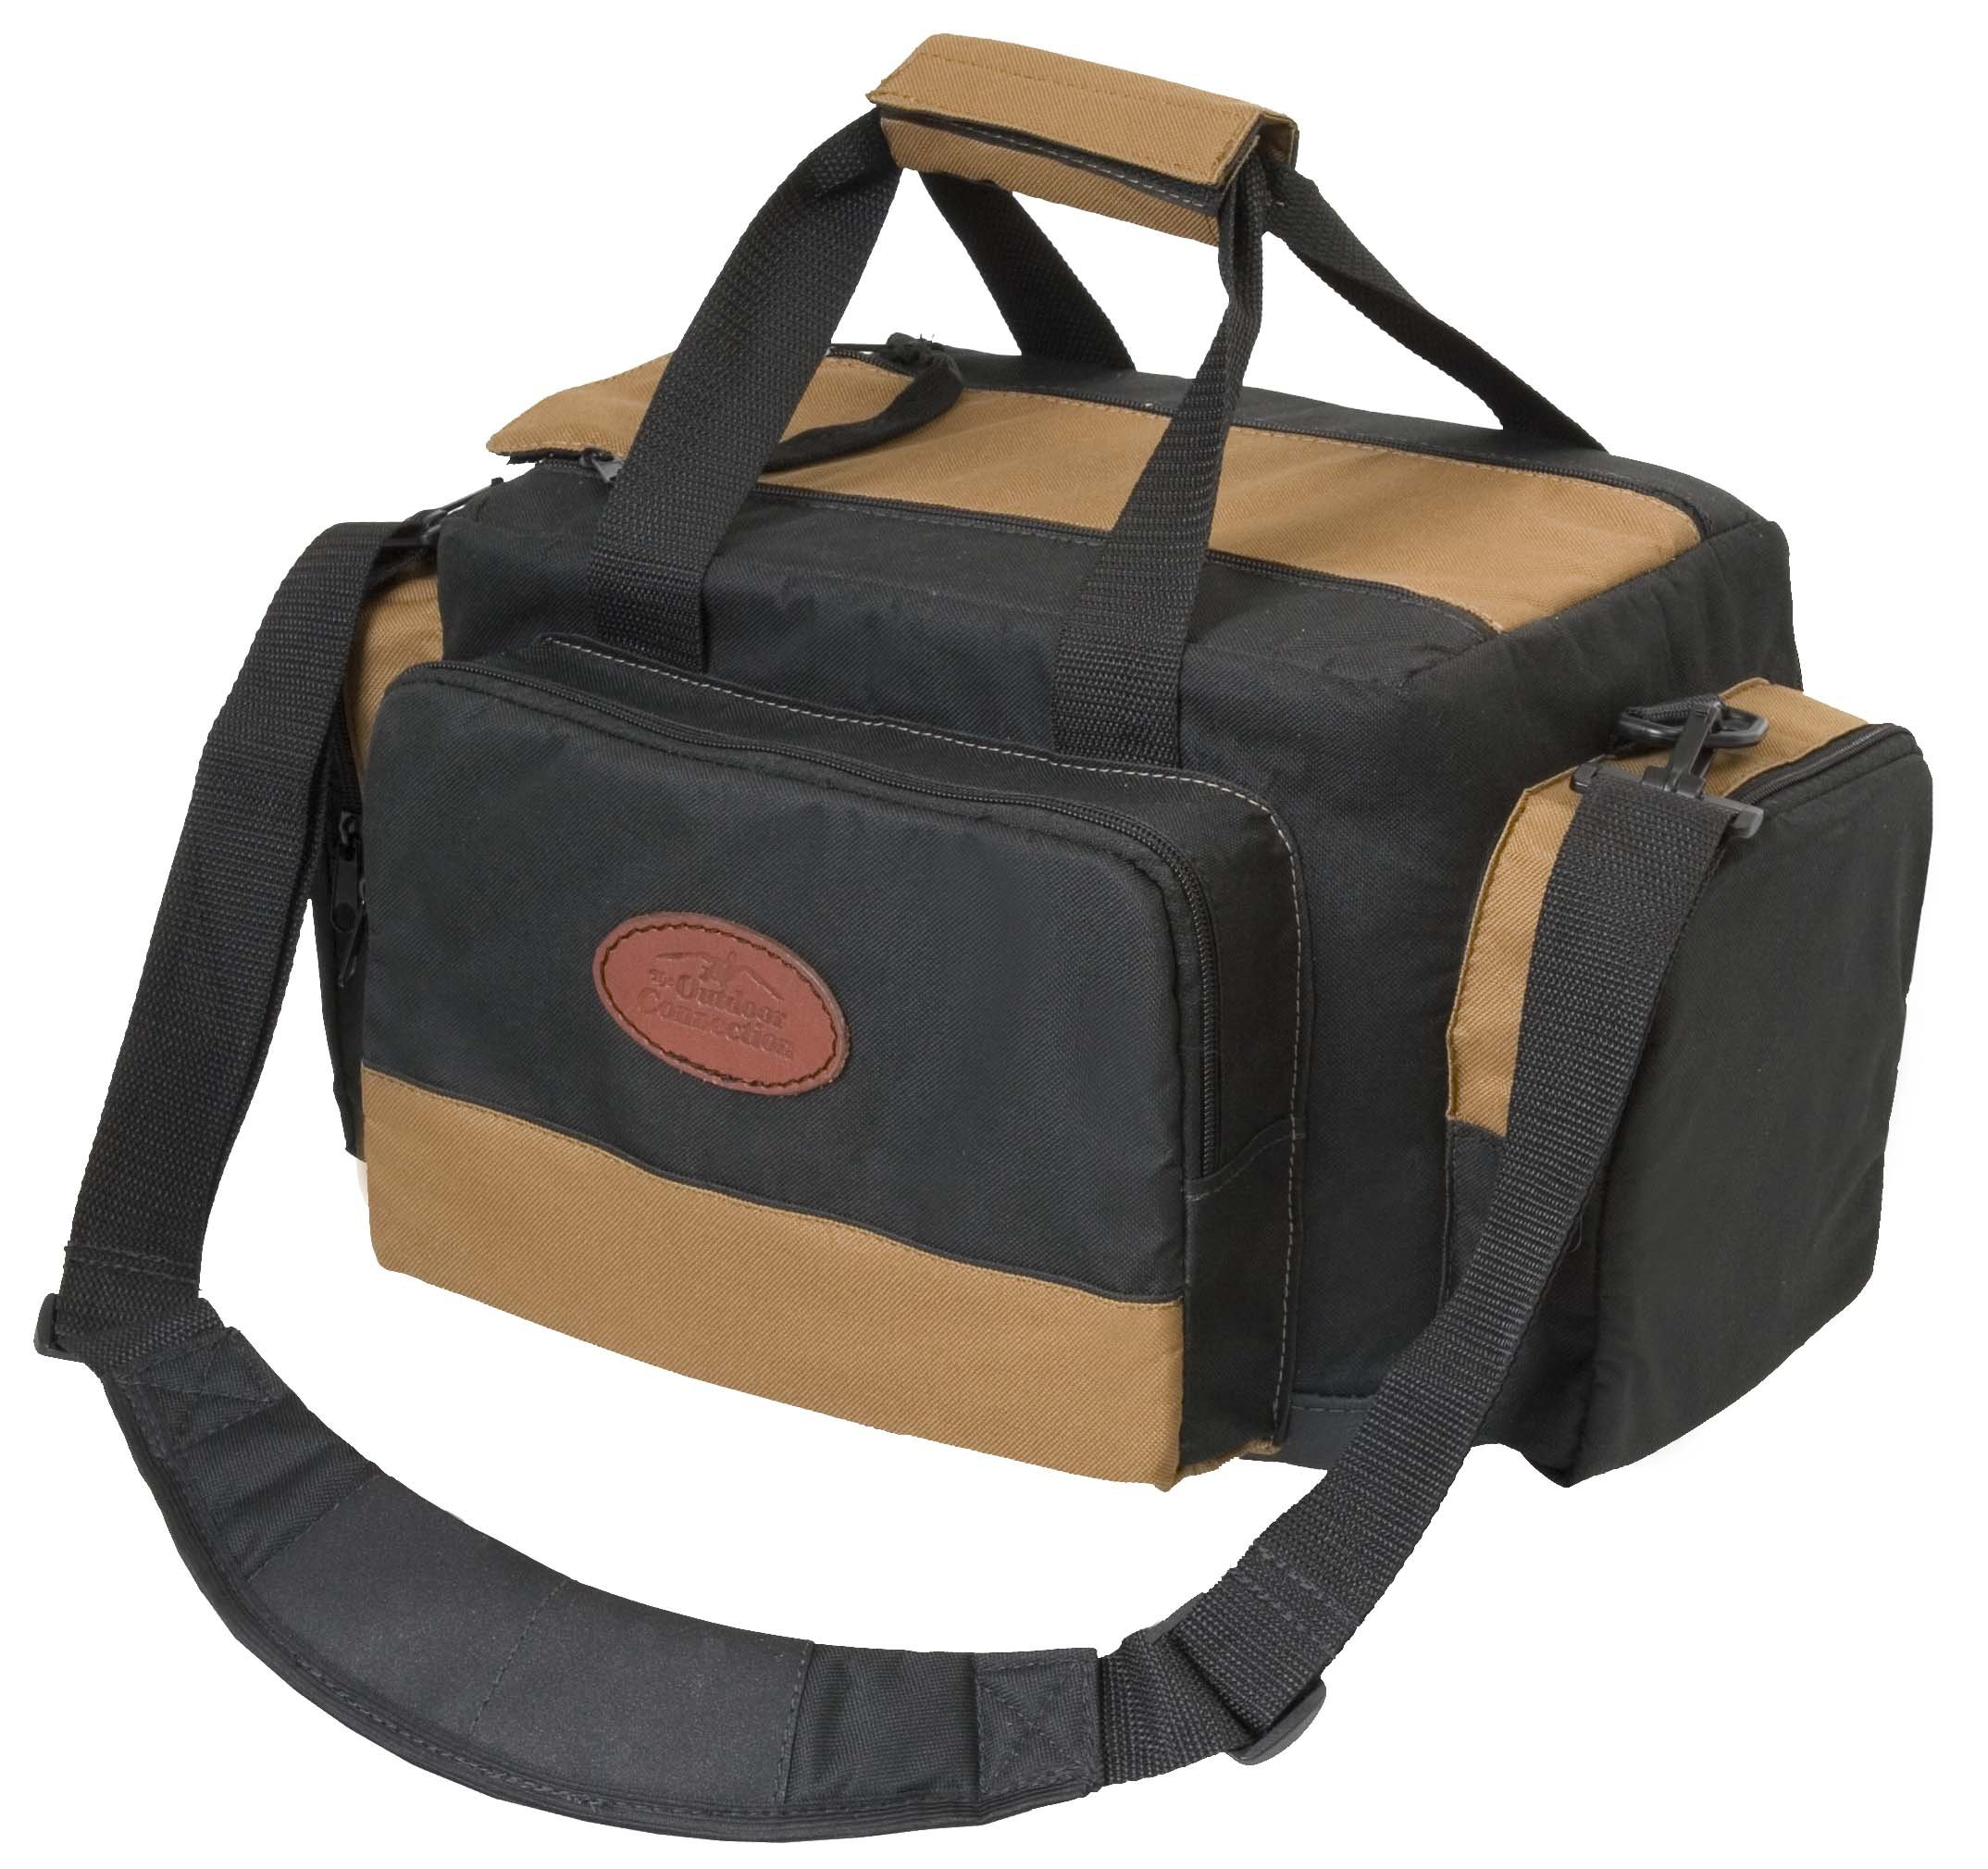 Outdoor Connection BGRNG1-28110 Deluxe Range Bag (Tan/Black) by Outdoor Connection (Image #2)